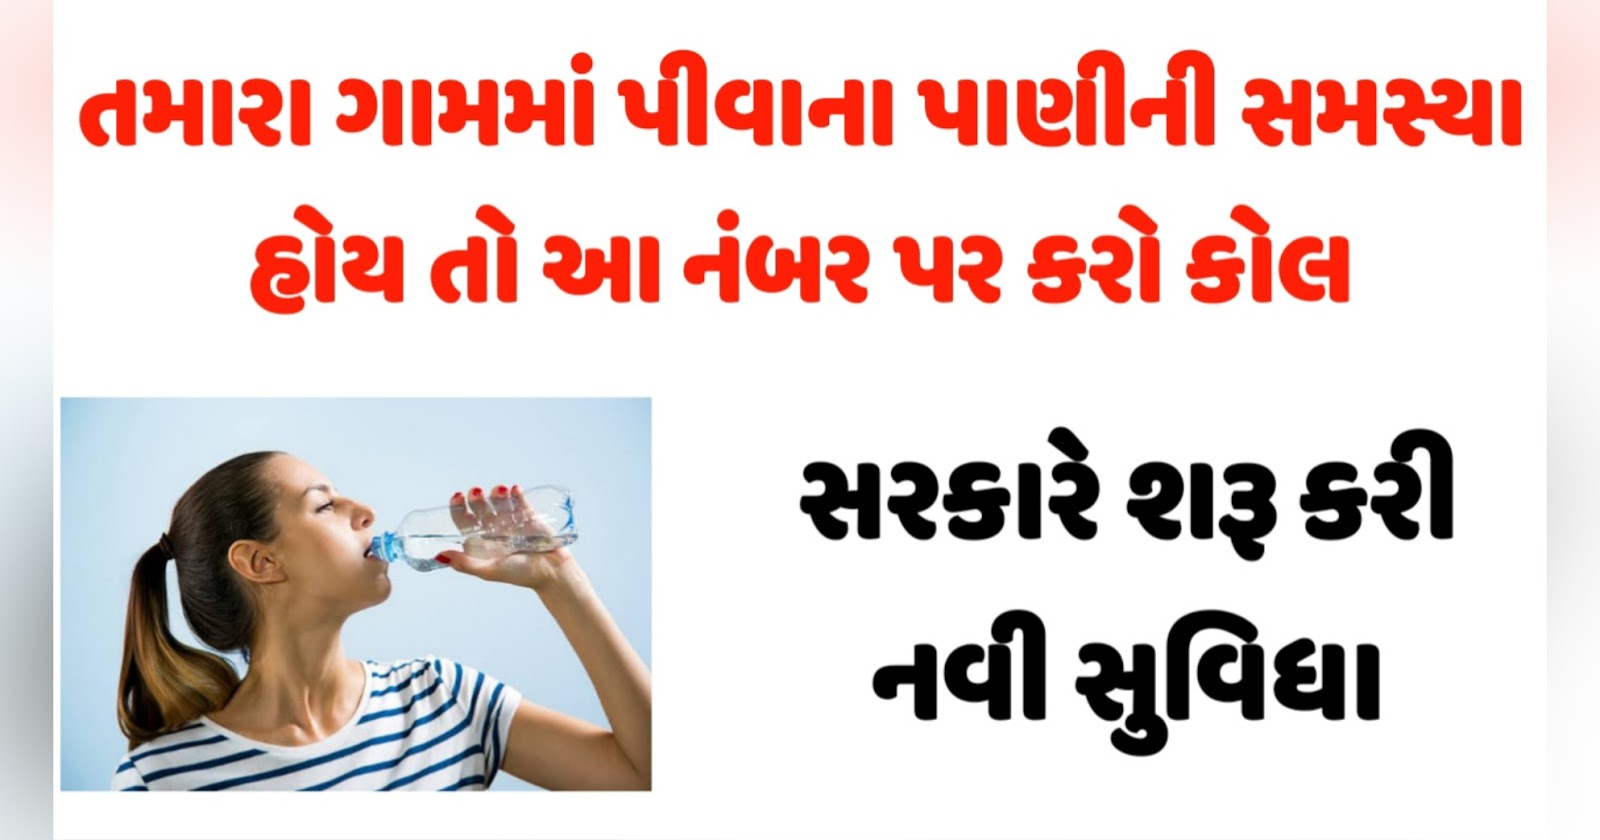 Drinking Water Helpline Number For Gujarat Village